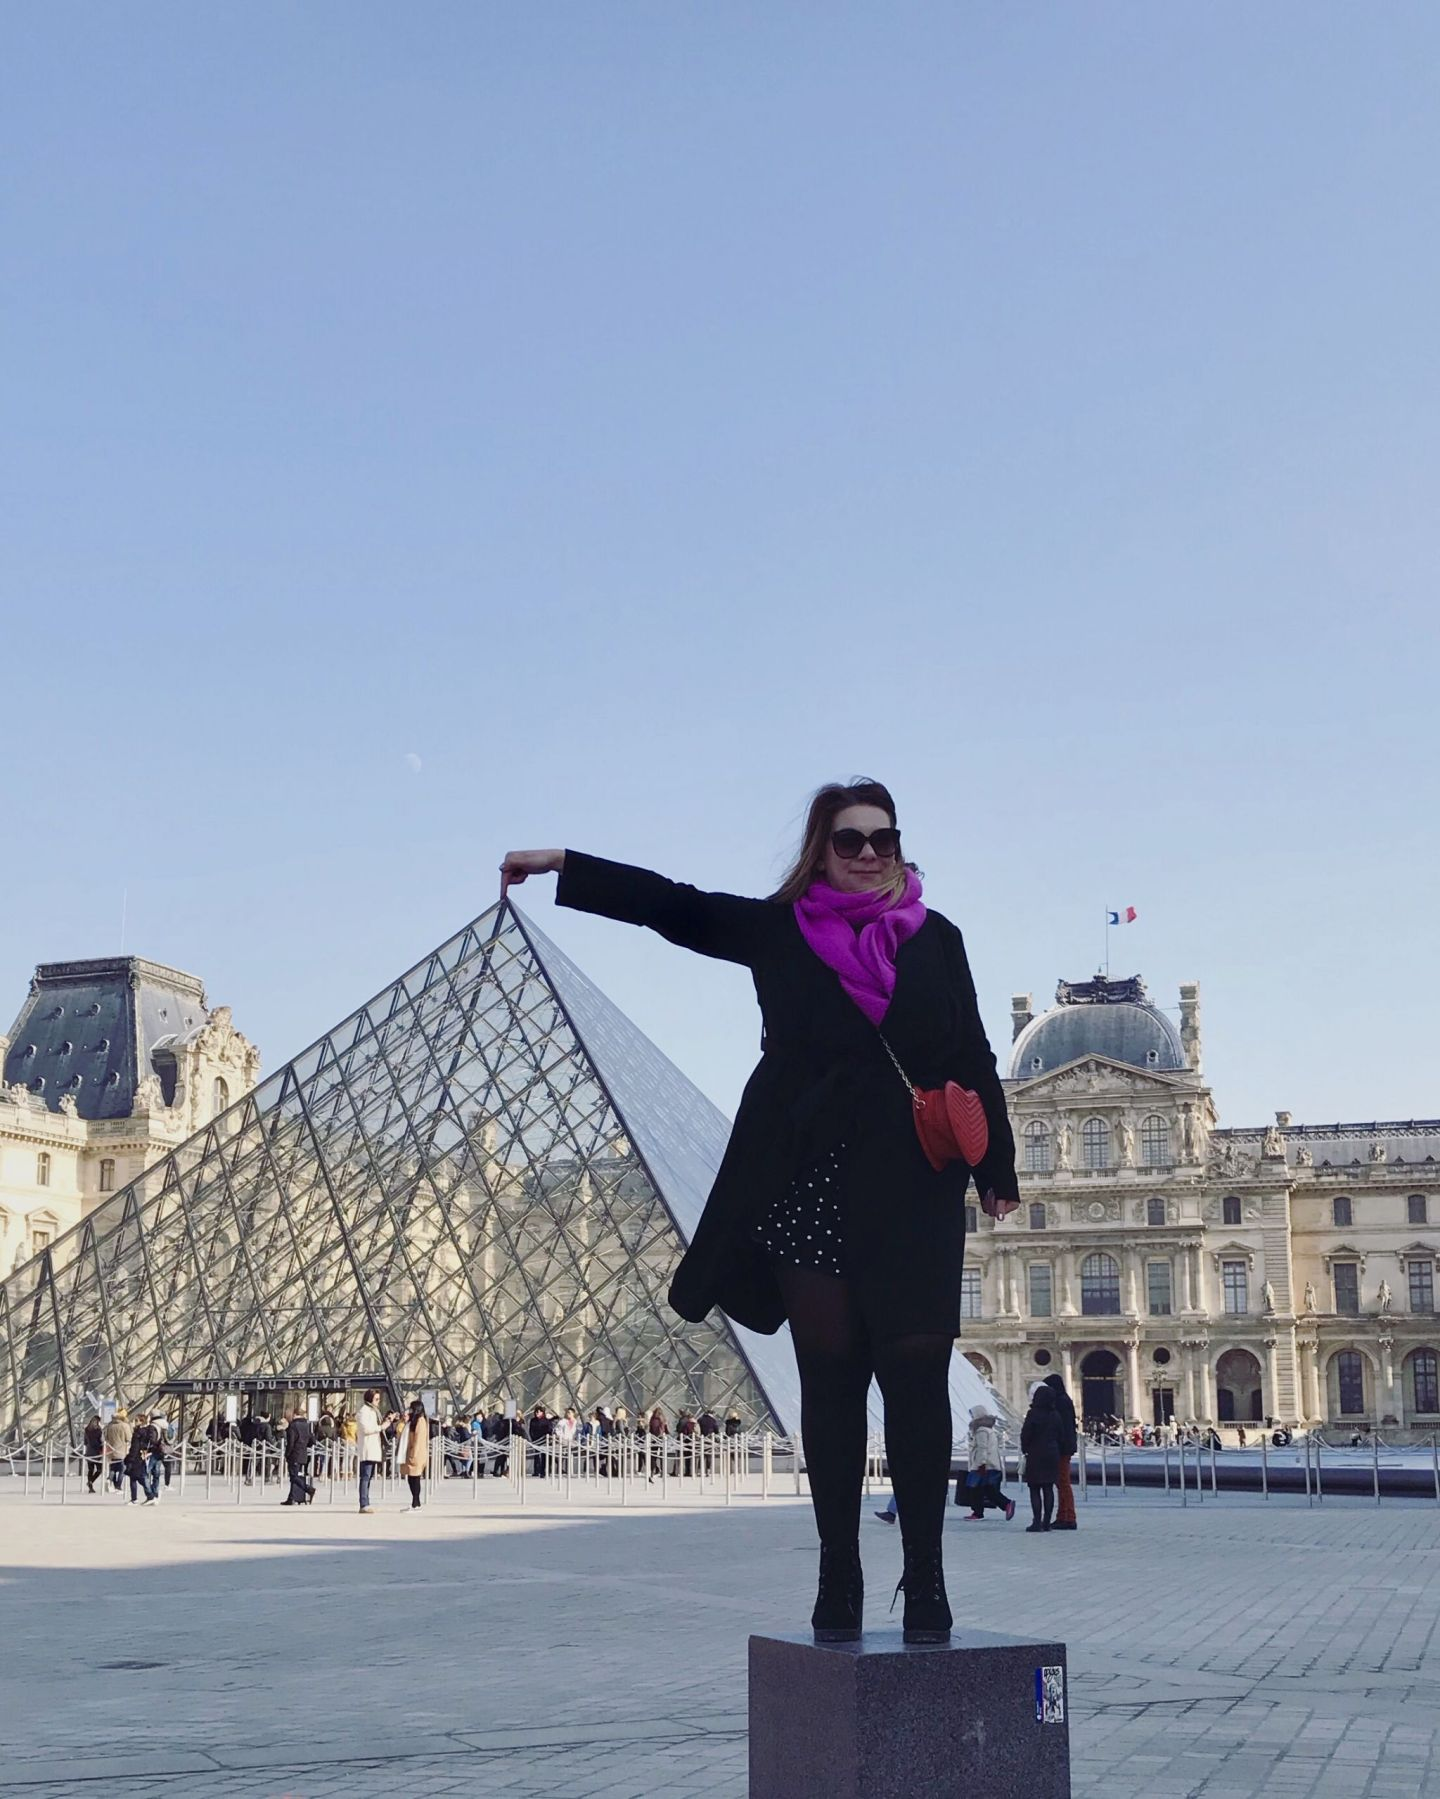 Touching the pyramid point at The Louvre Paris